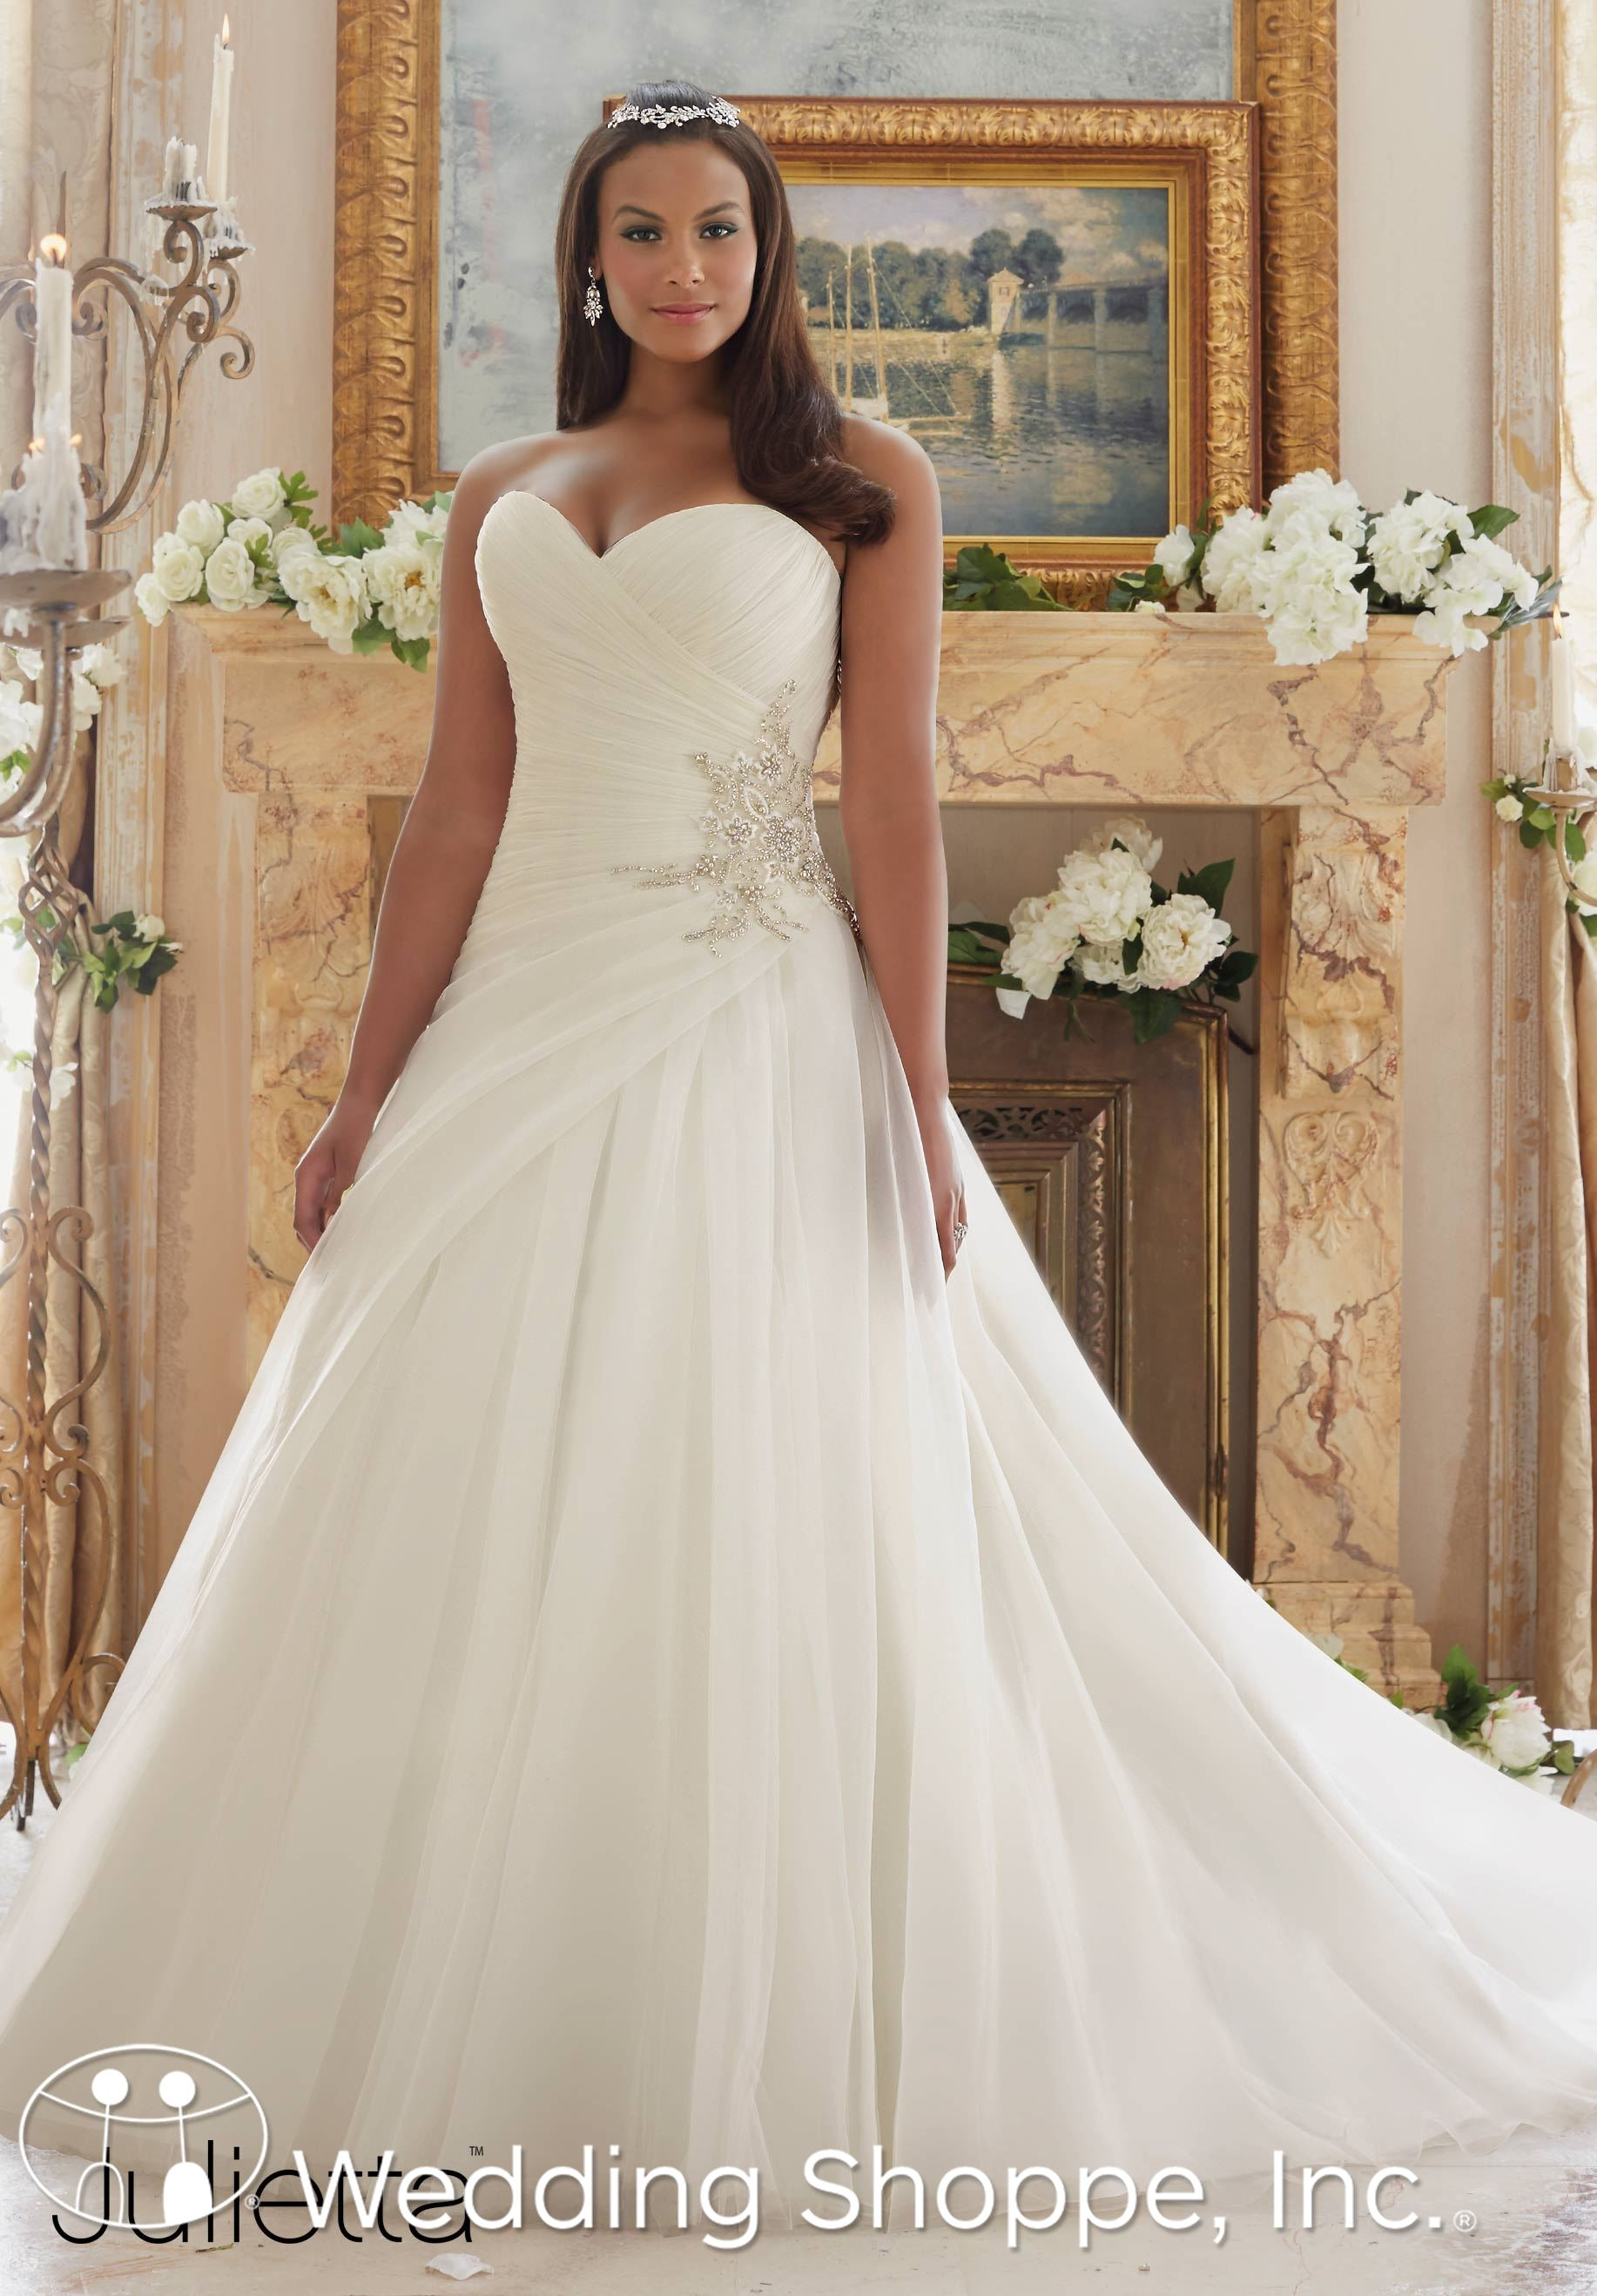 13 Tips for Shopping for Plus Size Wedding Dresses – Wedding ...